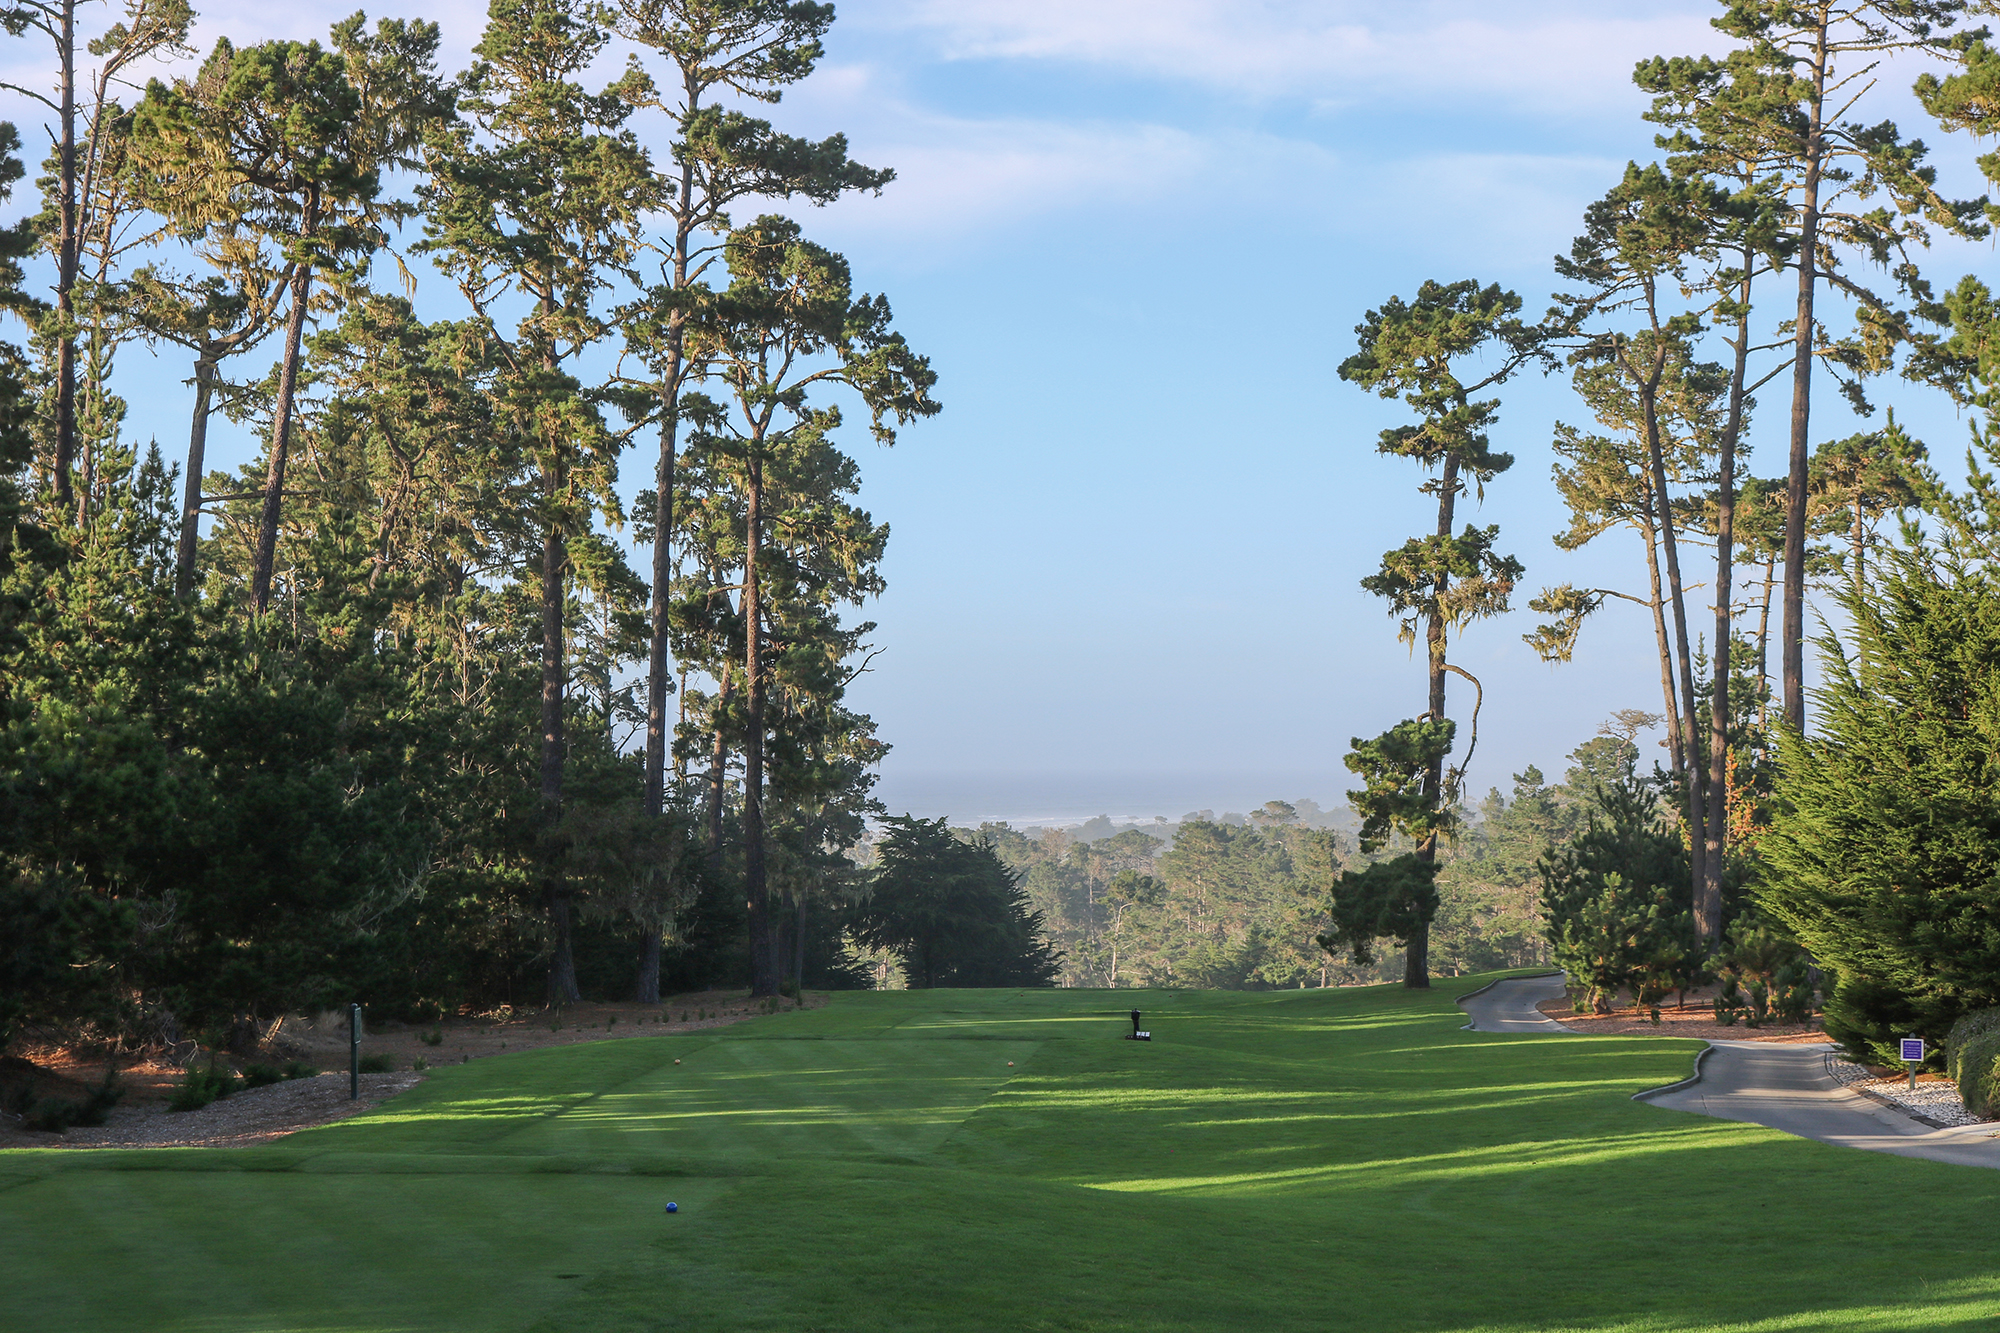 1st tee at Spyglass Hill